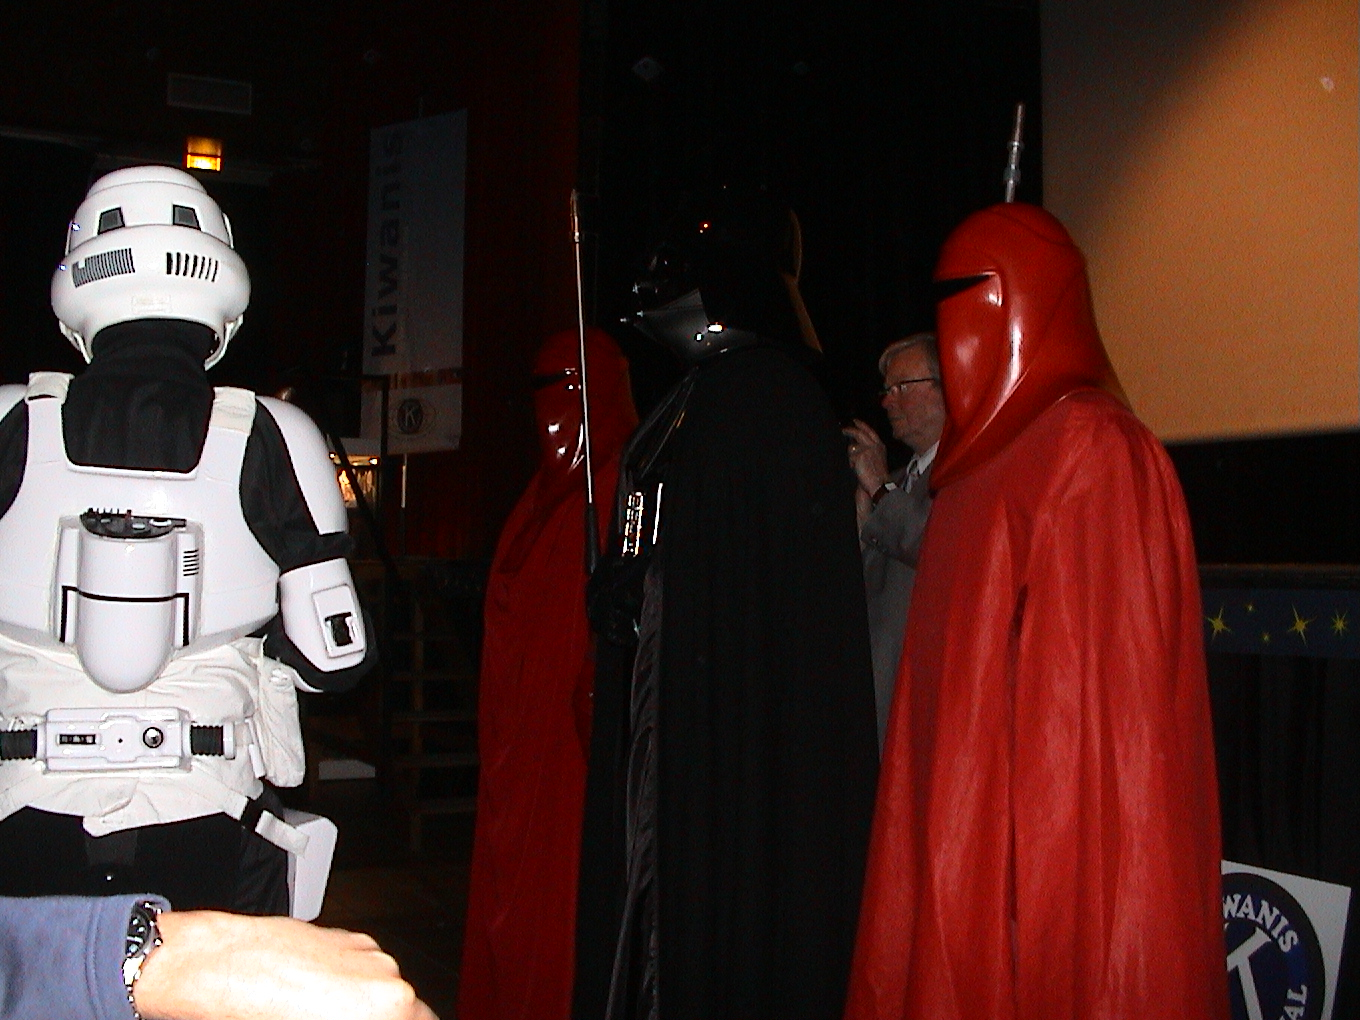 Photo 65 - Darth Vader supervise.